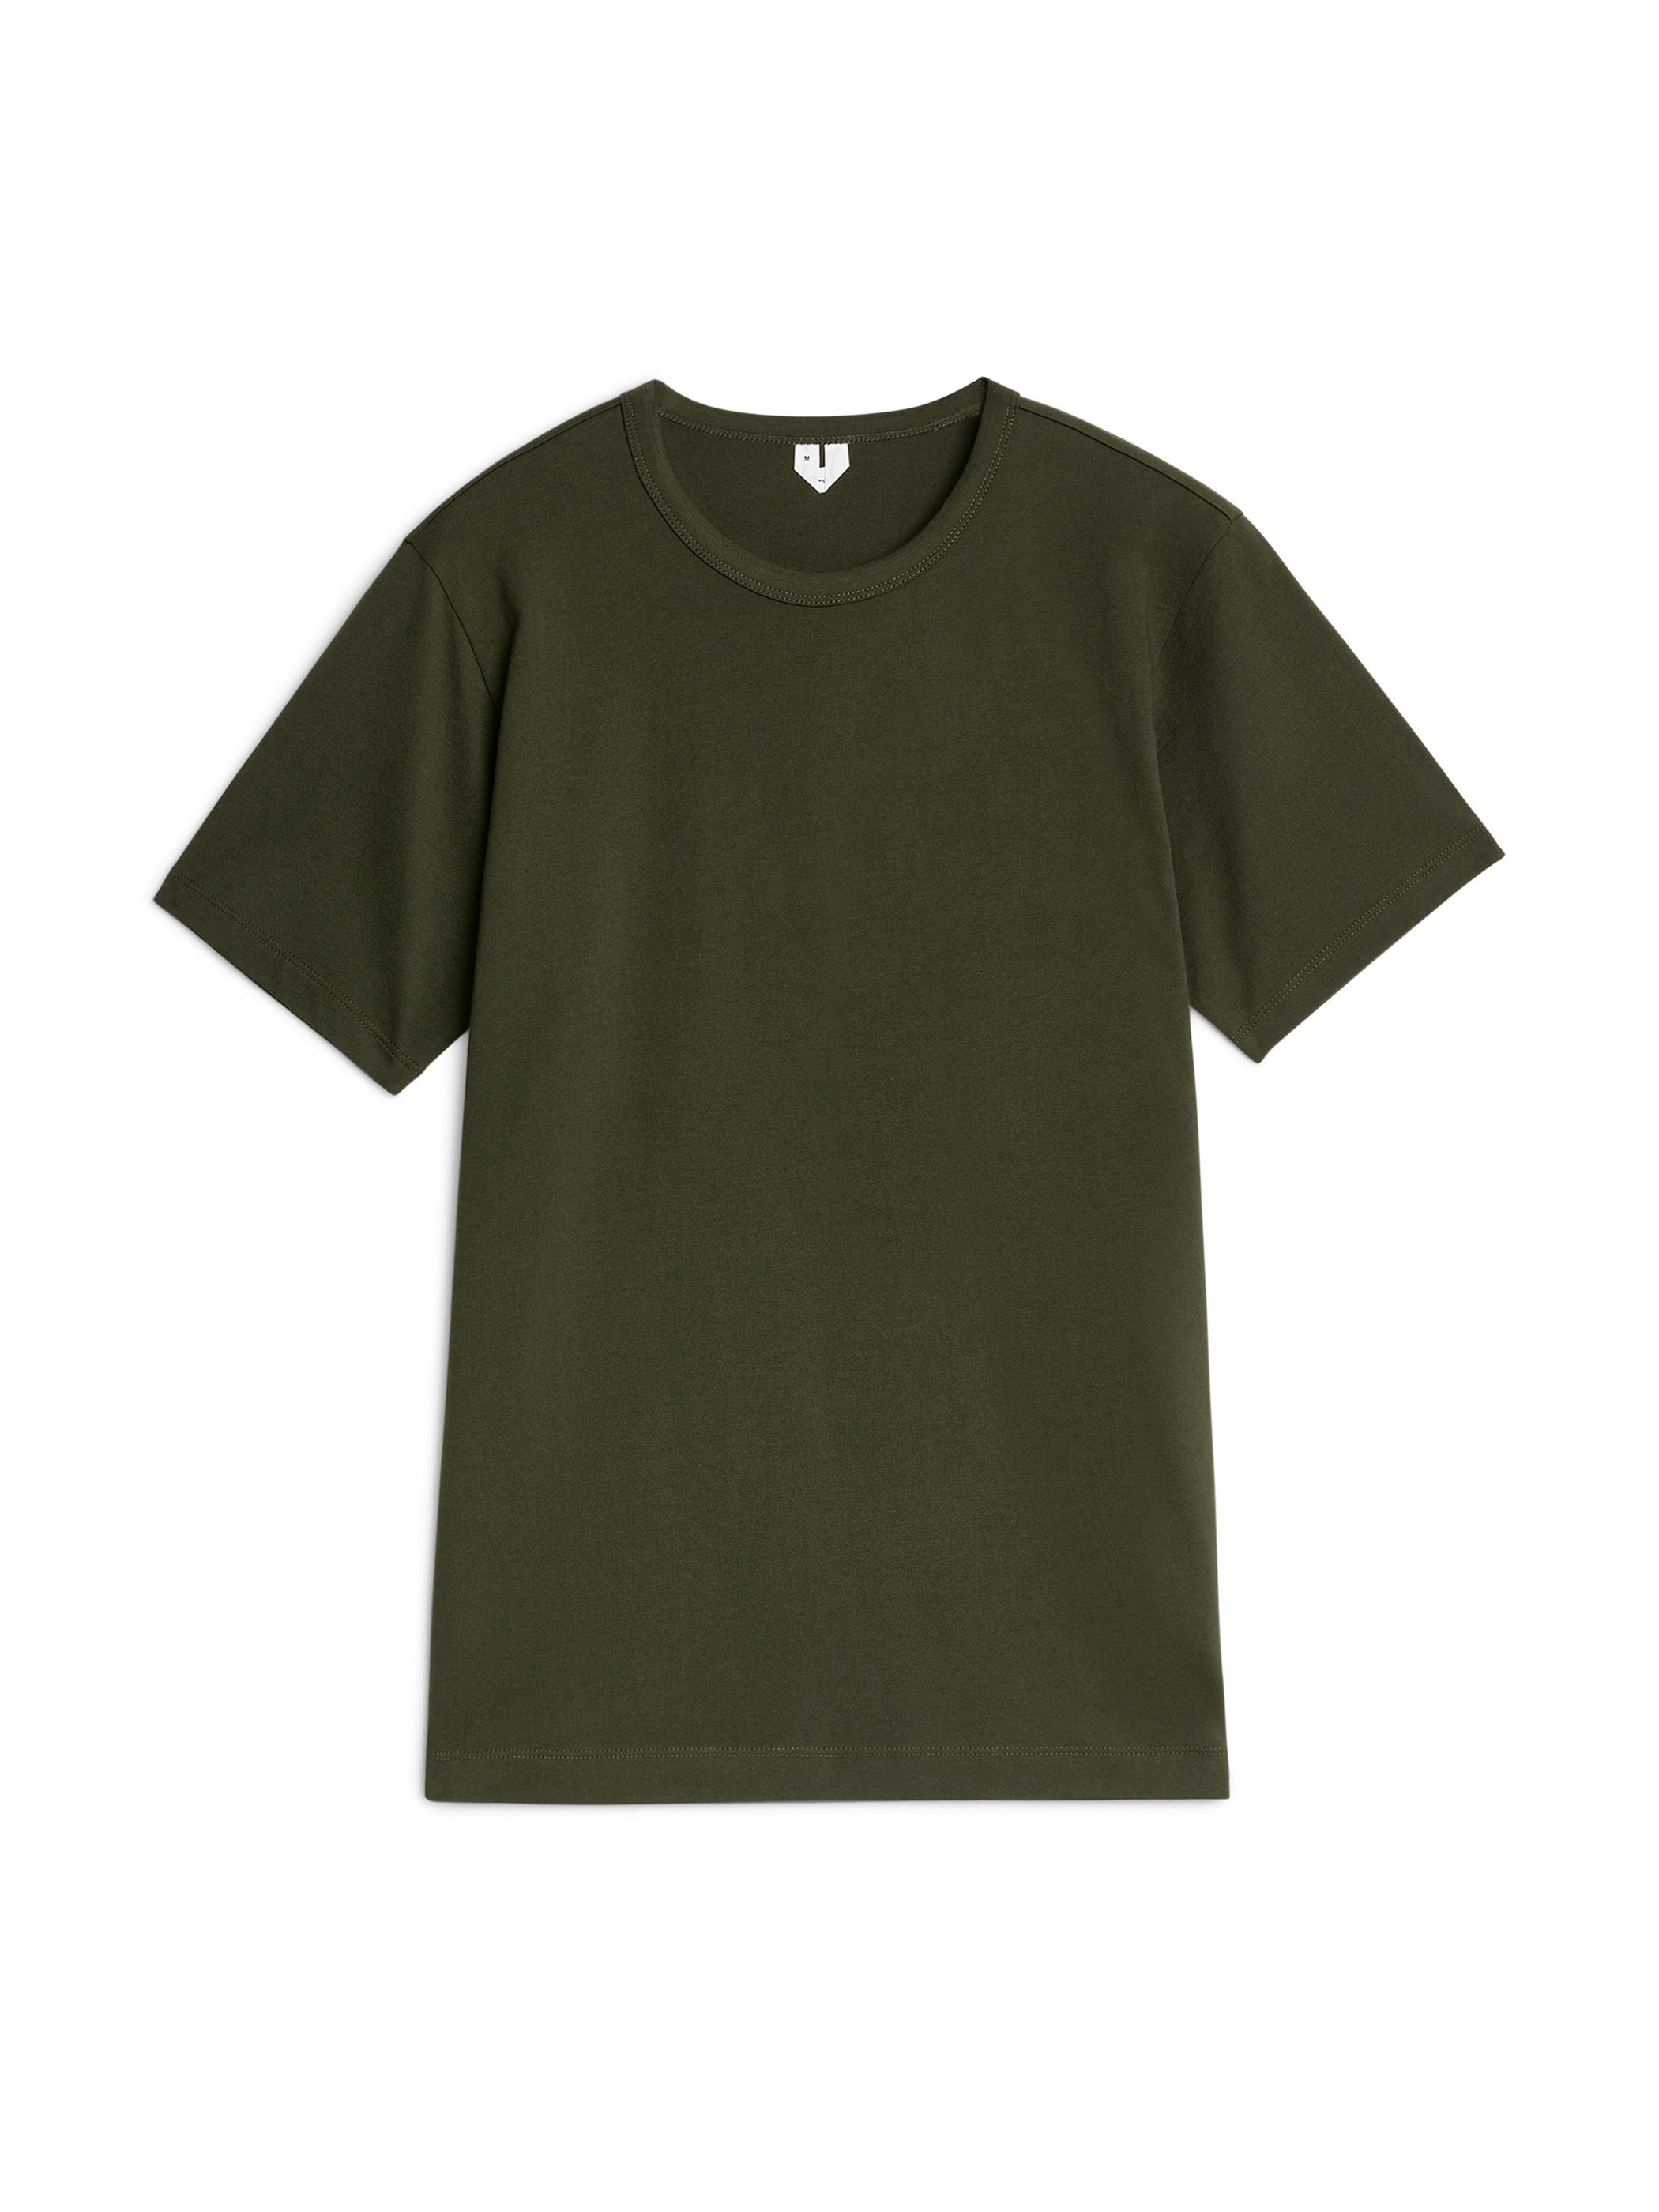 Fabric Swatch image of Arket 150 gsm pima cotton t-shirt in green